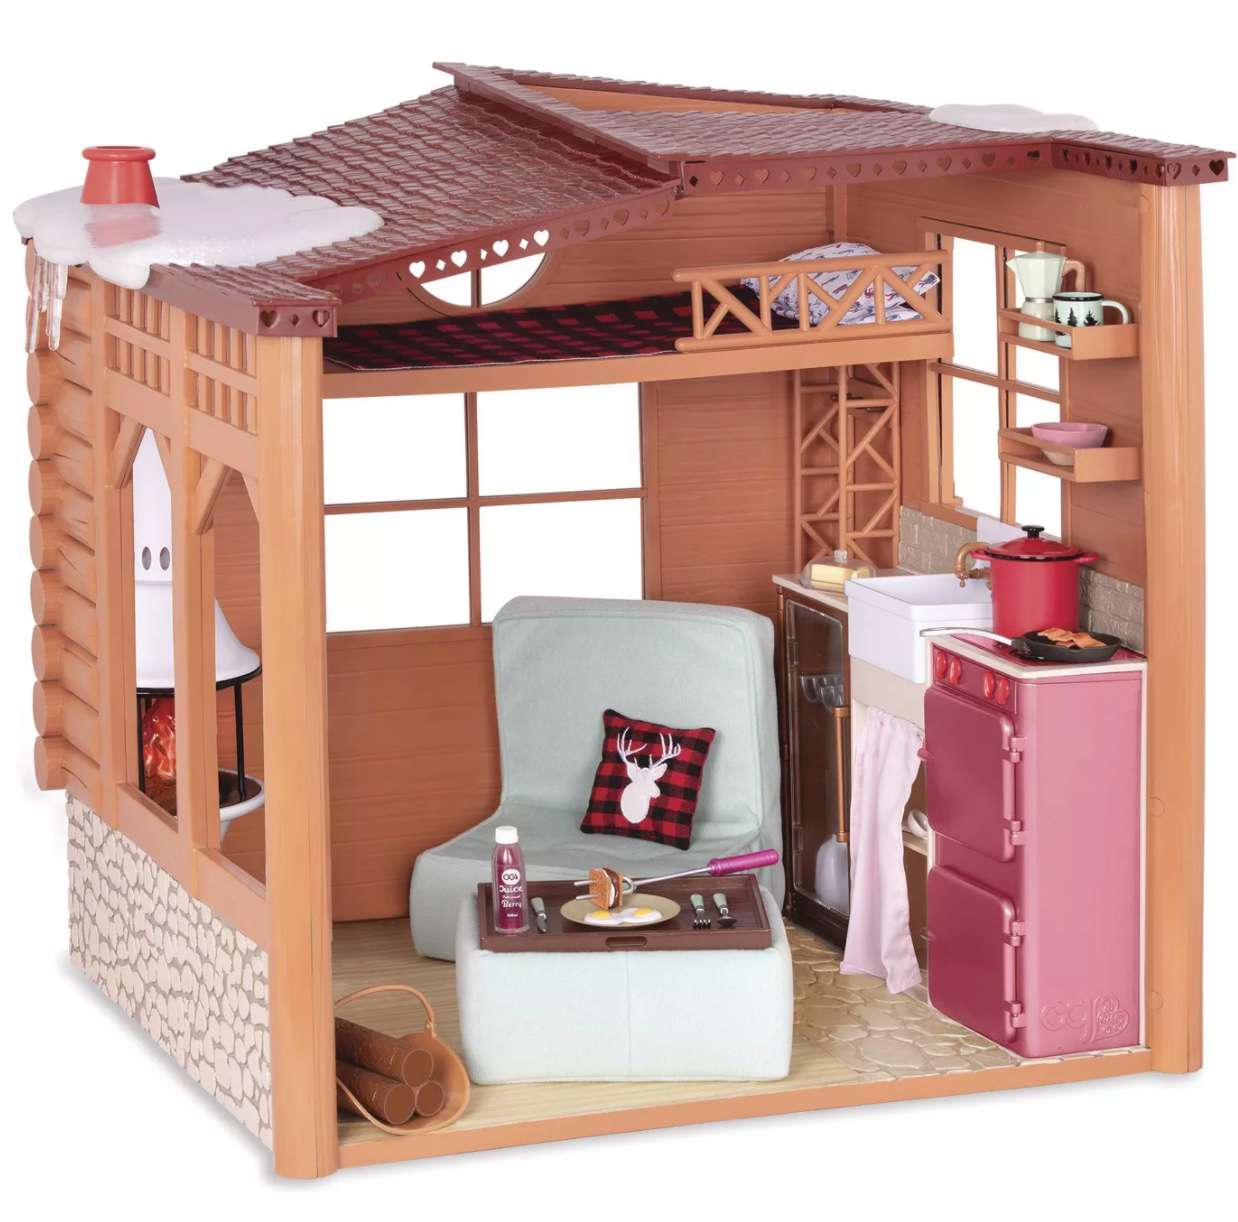 Our Generation Cozy Cabin Dollhouse Playset